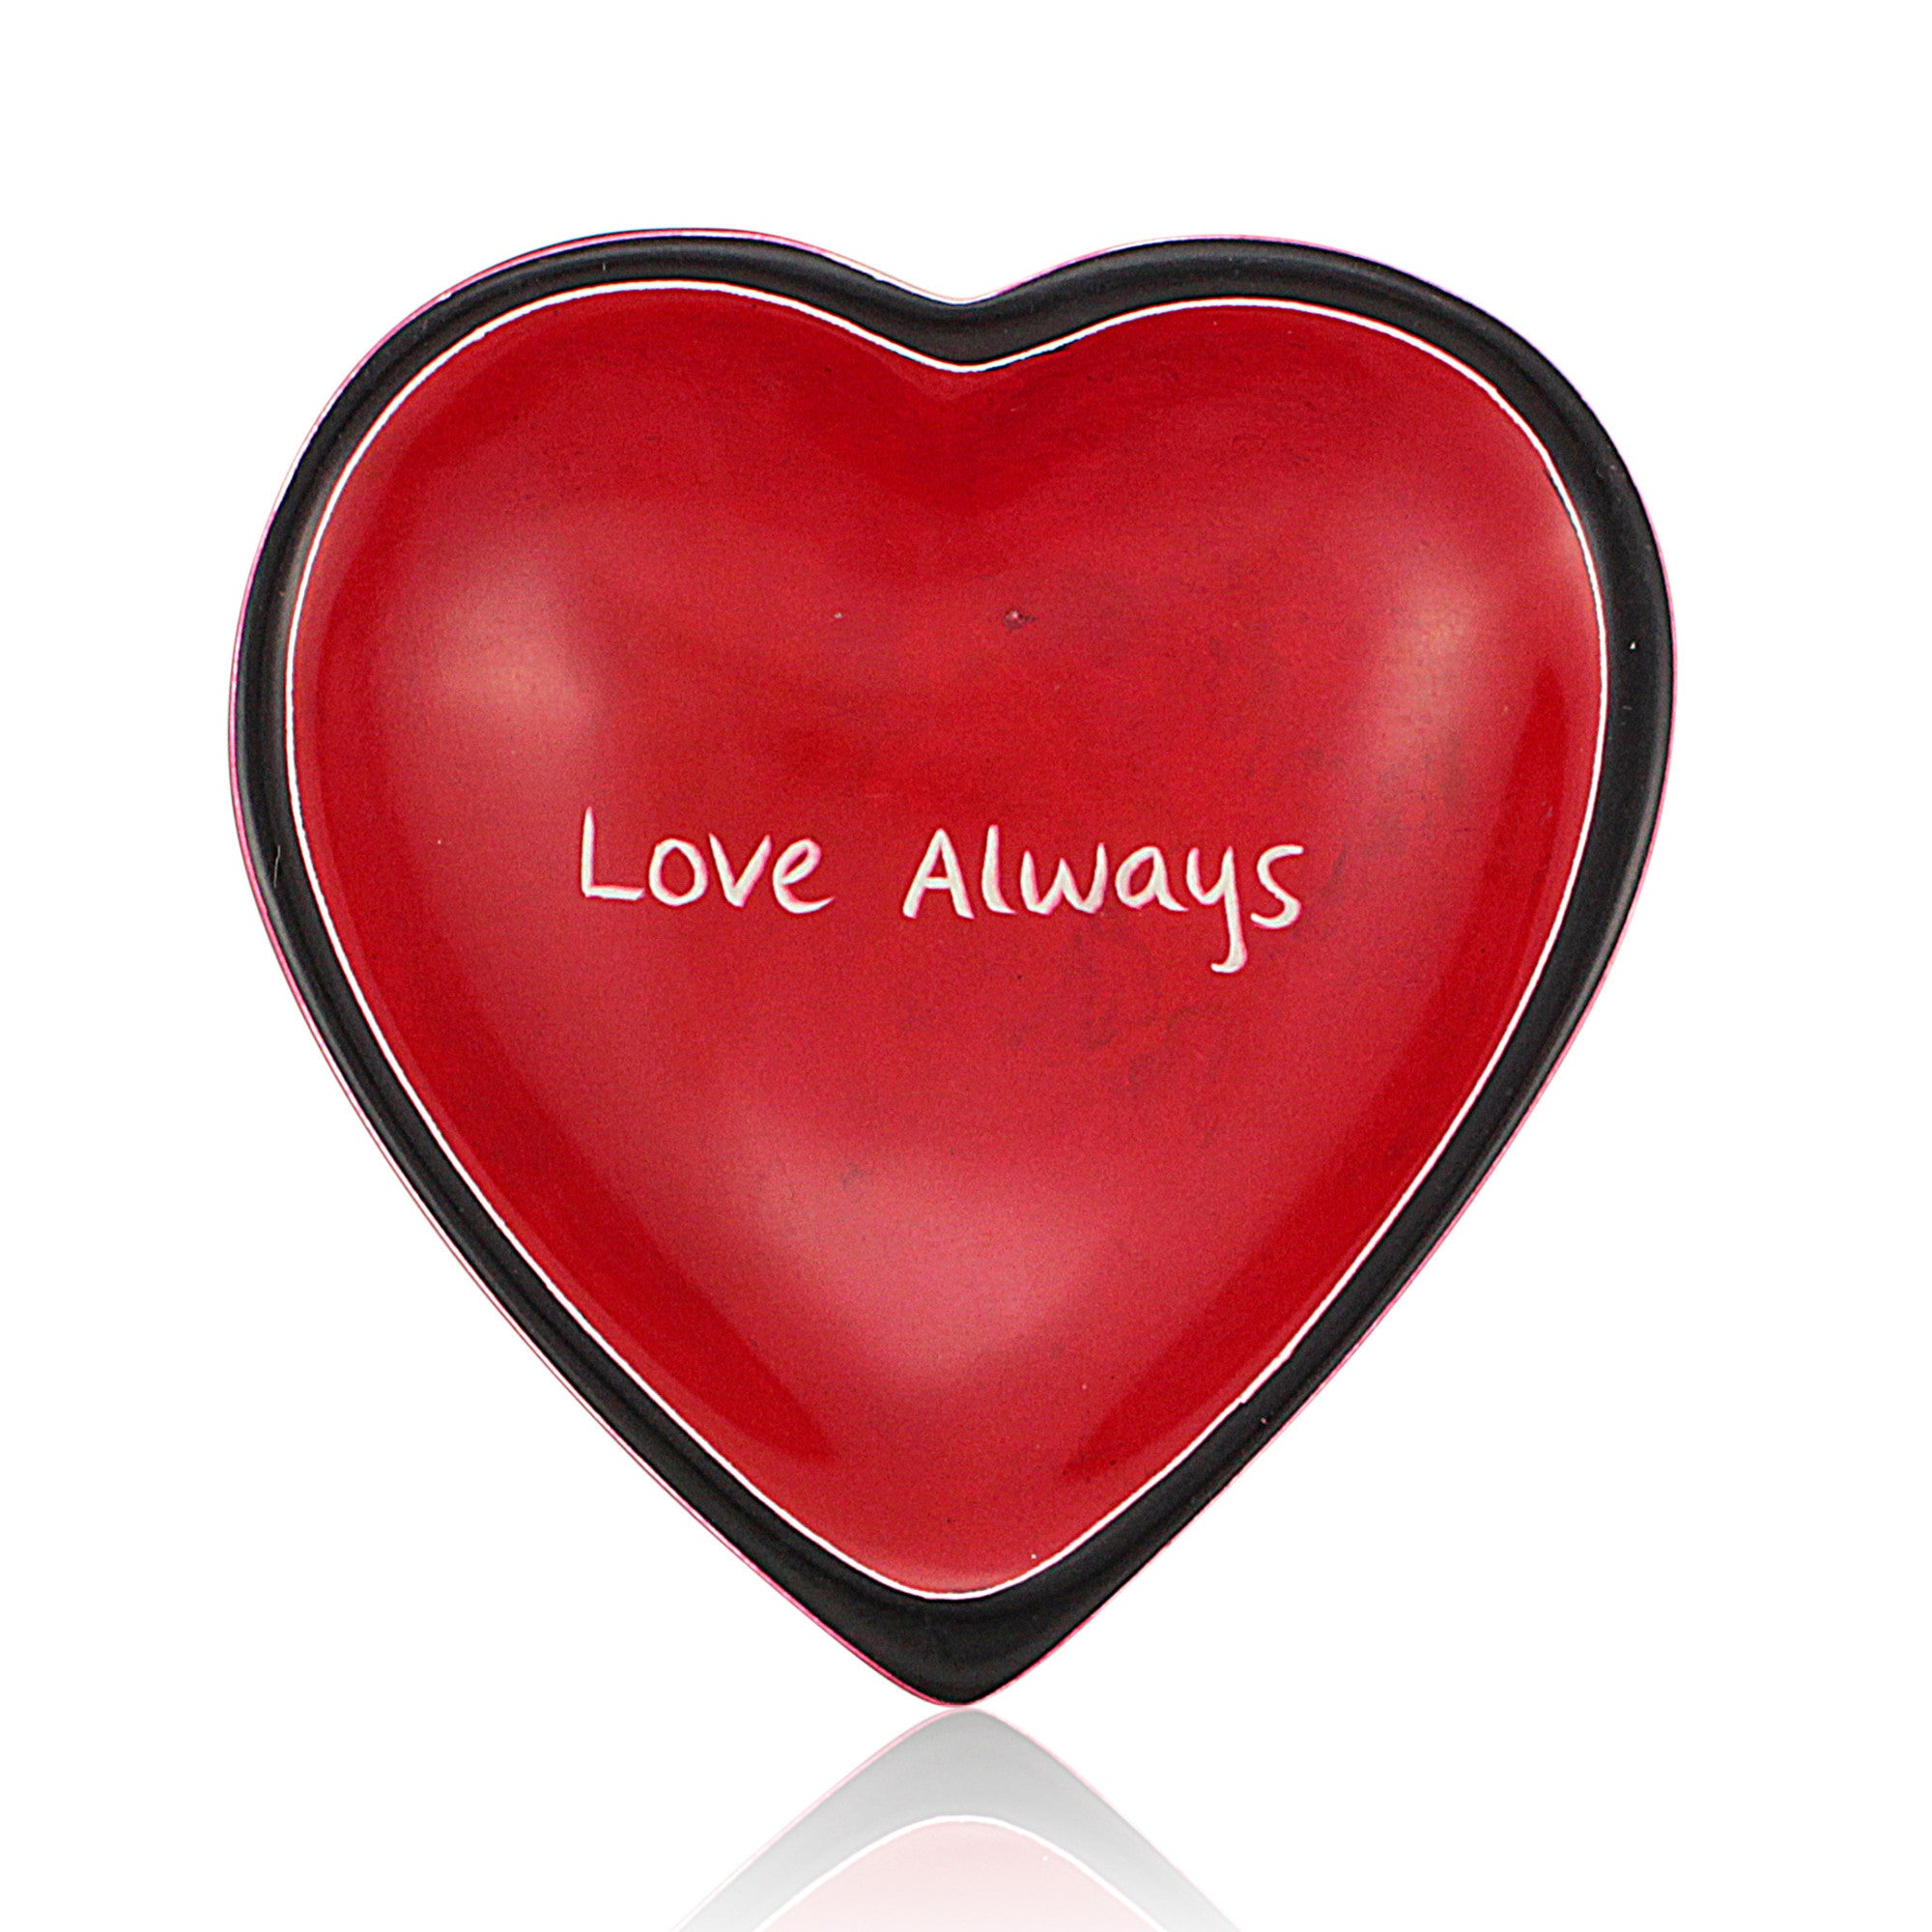 Love Always Heart Shaped Kenyan Soapstone Dish by Venture Imports